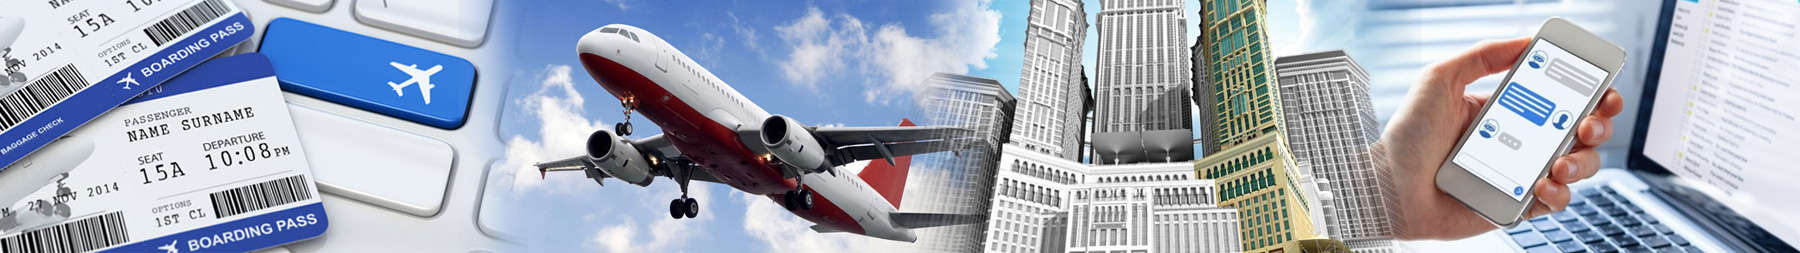 Airline & Hotel Booking